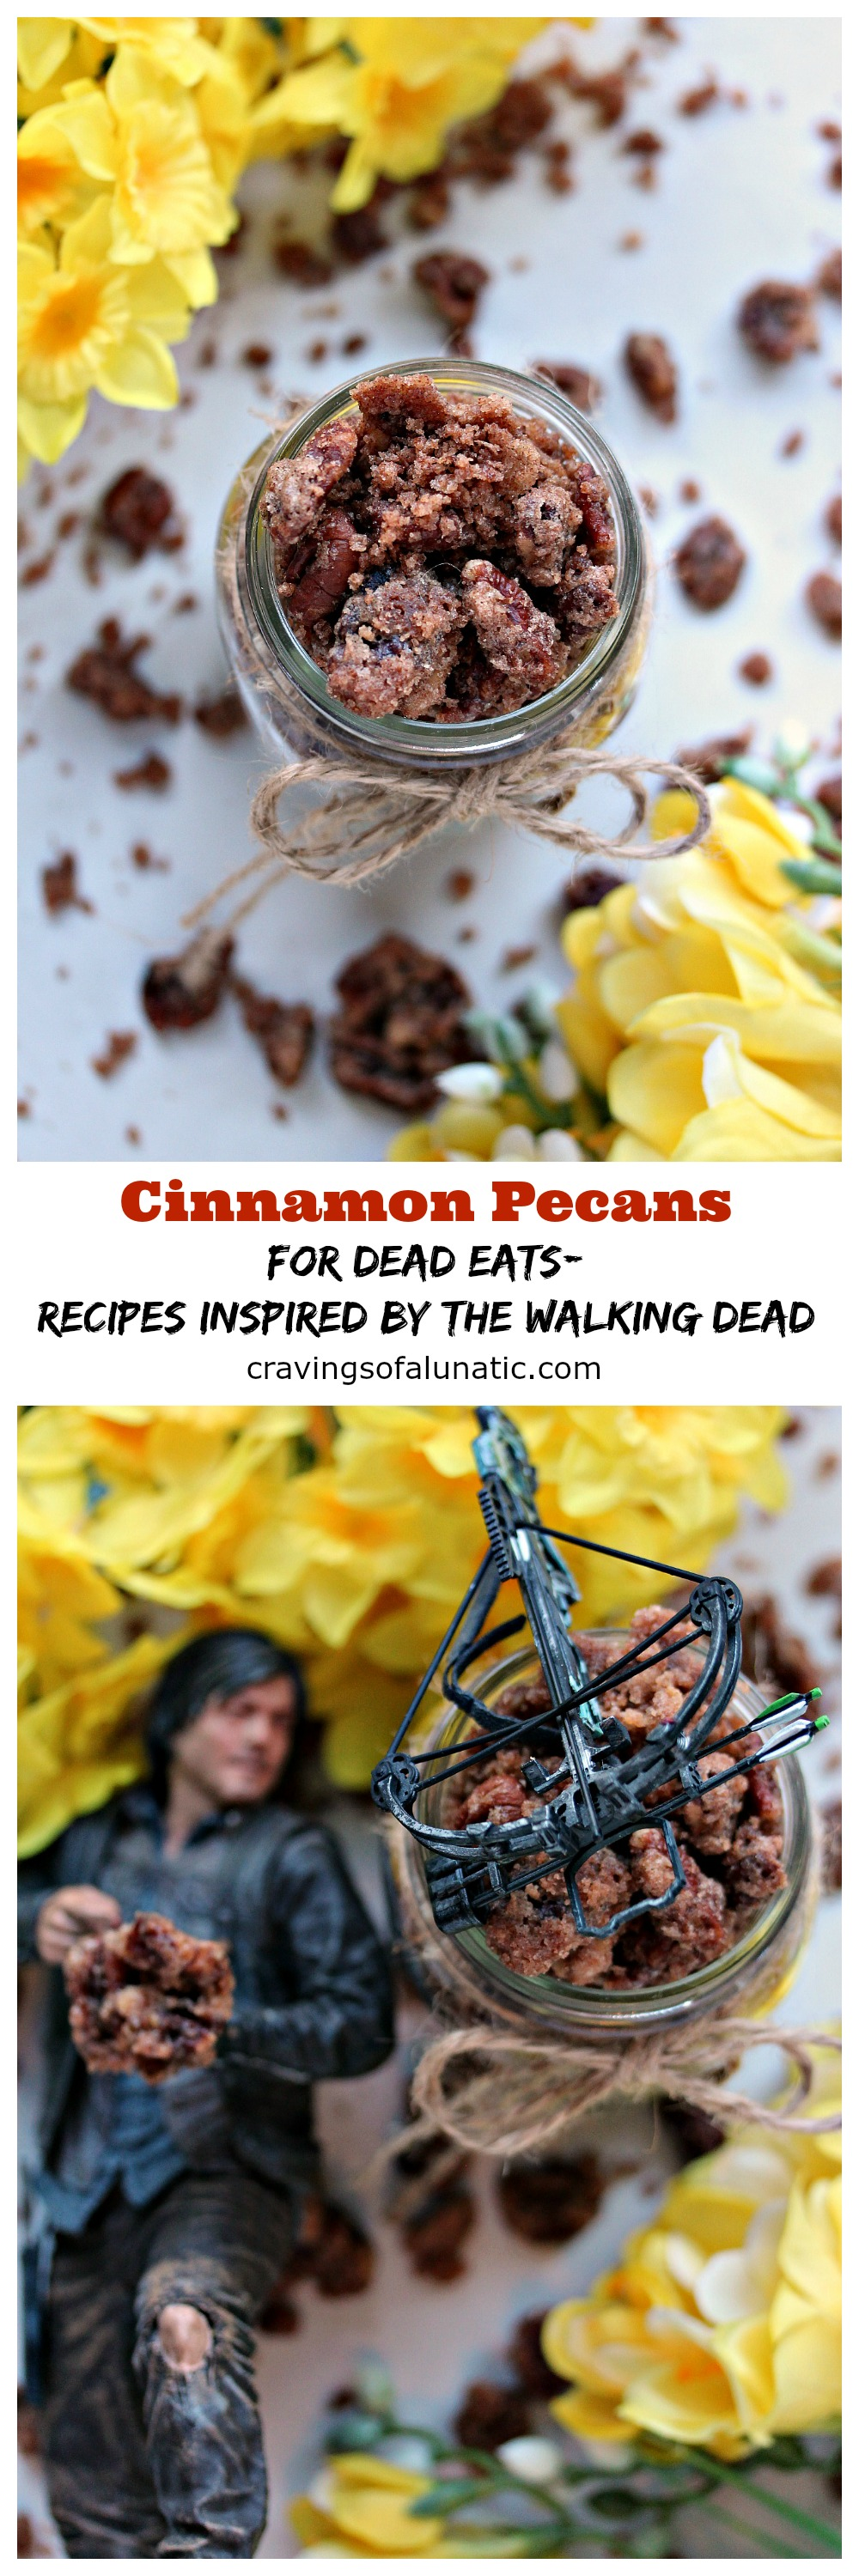 Cinnamon Pecans for Dead Eats 2: Recipes Inspired by The Walking Dead. Pecans coated with sugar and cinnamon, then toasted in the oven to perfection. Eat your fill, but don't look at the flowers.